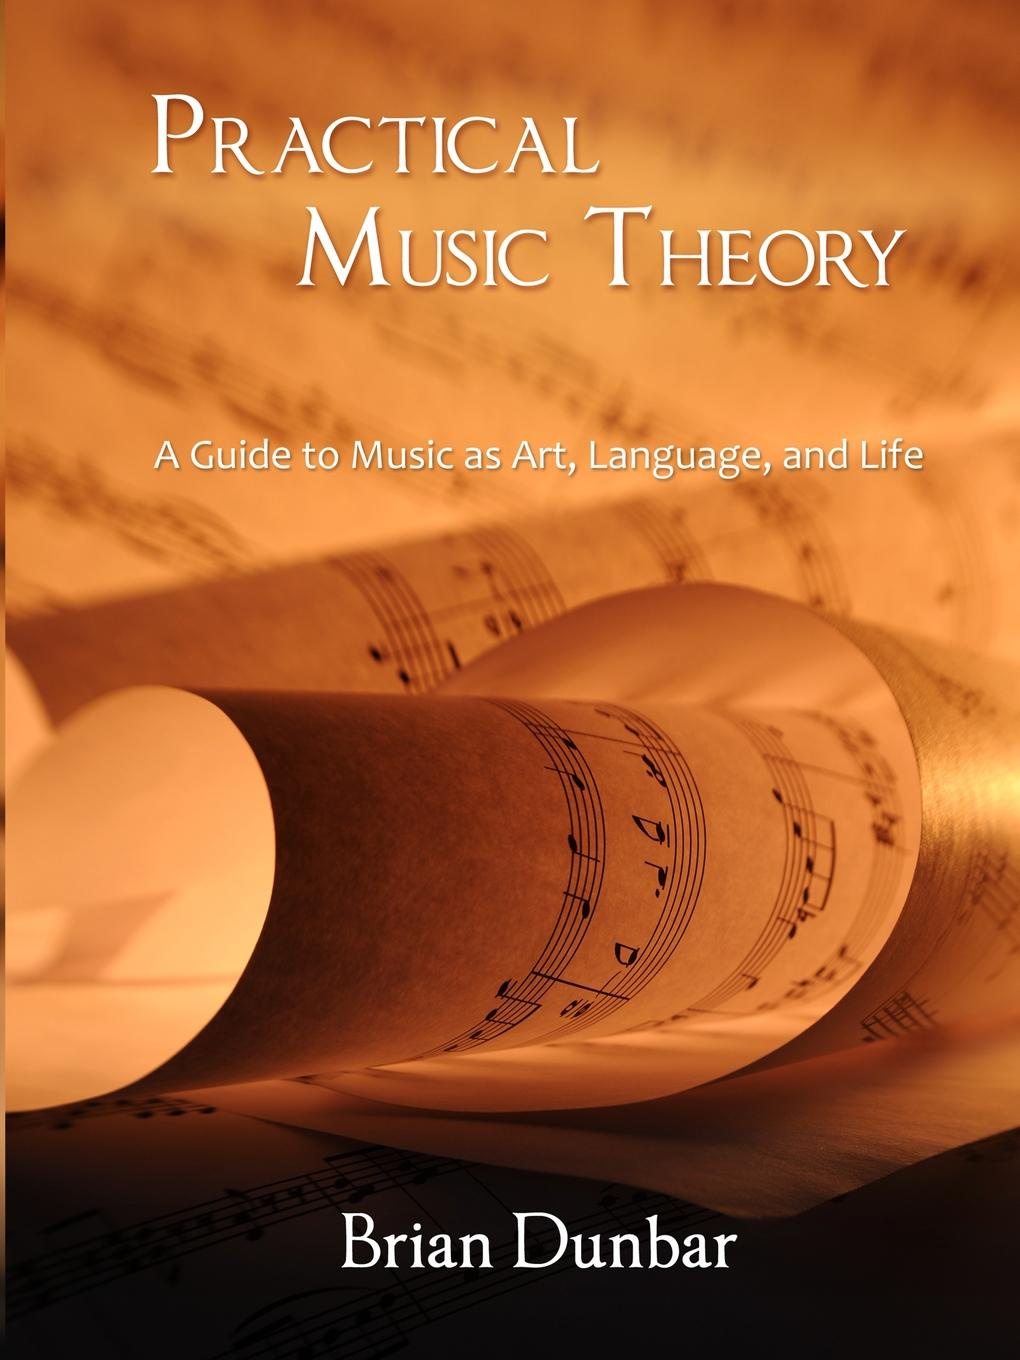 Brian Dunbar Practical Music Theory. A Guide to Music as Art, Language, and Life t morley a plain and easy introduction to practical music